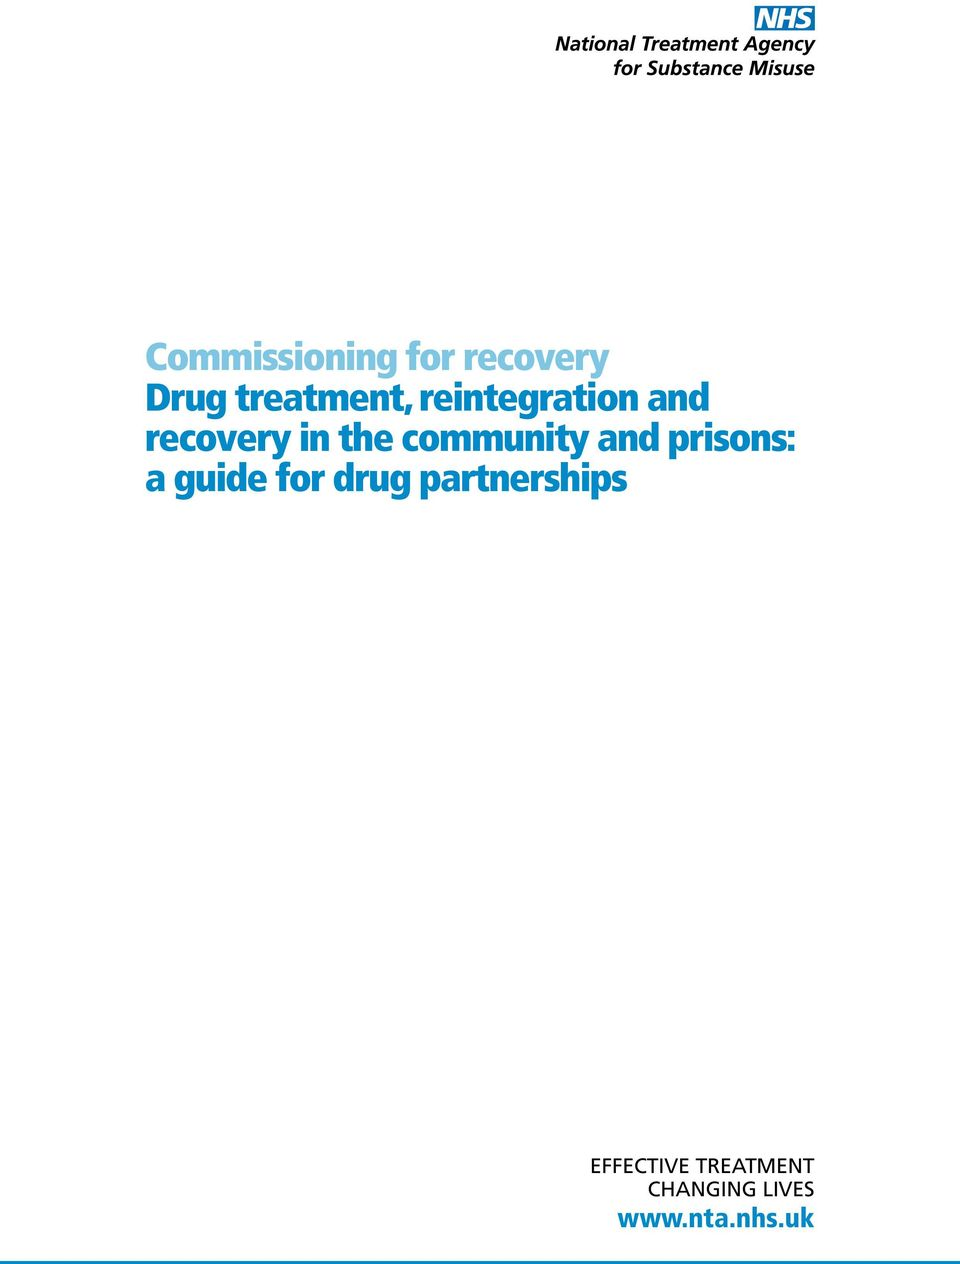 and prisons: a guide for drug partnerships